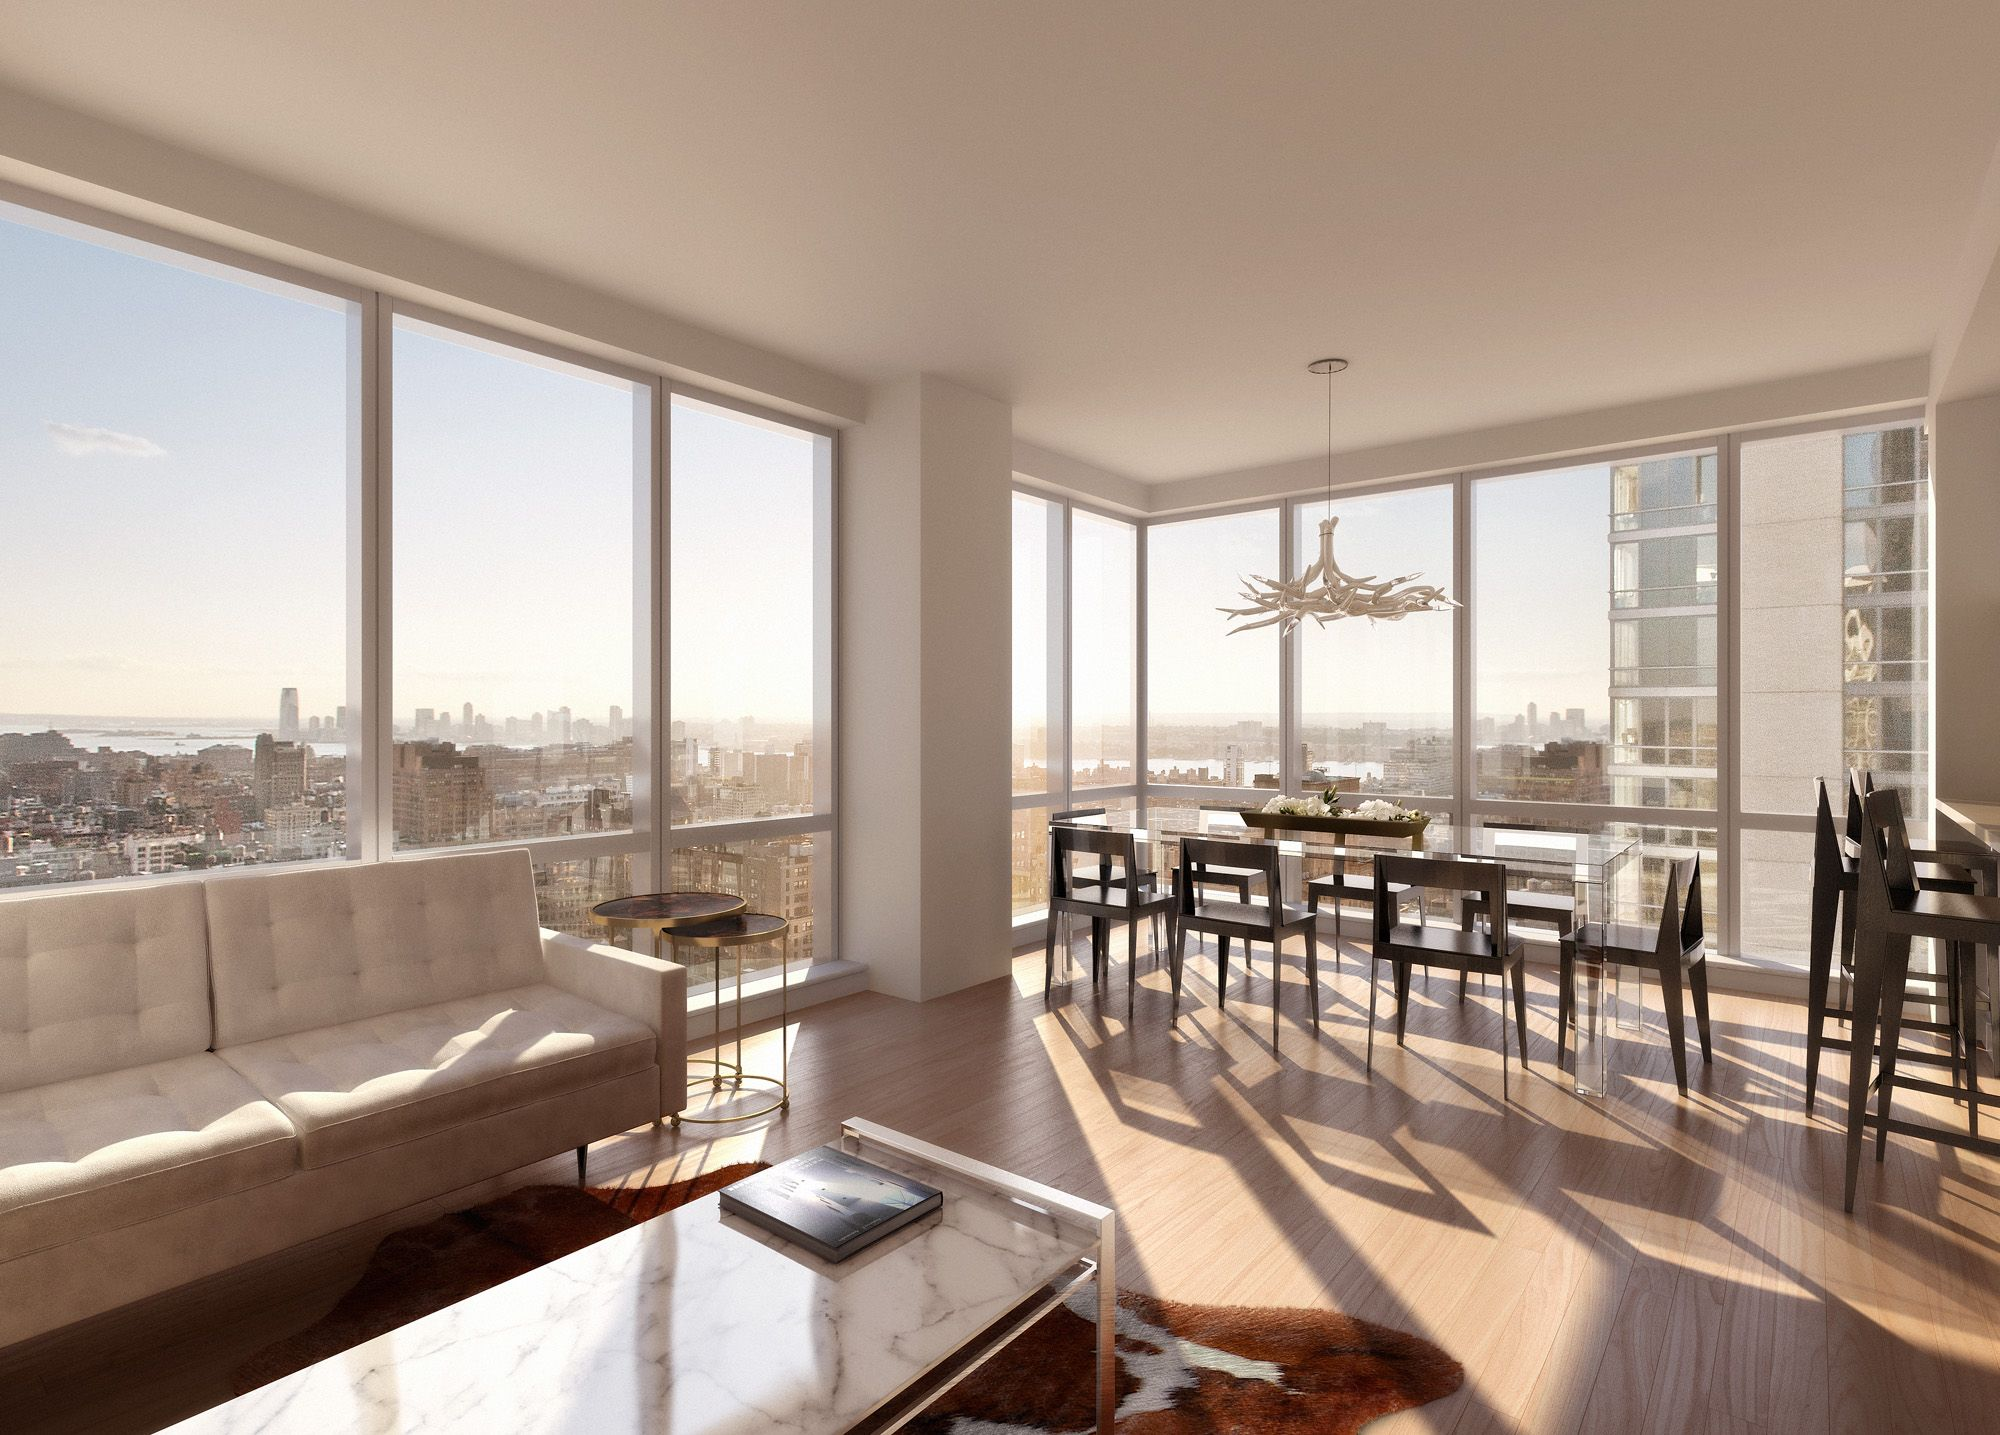 Apartments,Marvelous Manhattan Penthouse Apartement Design Inspiration With  Charming White Leather Sofa And Luxurious White Granite Also Comfort Dining  Room ...